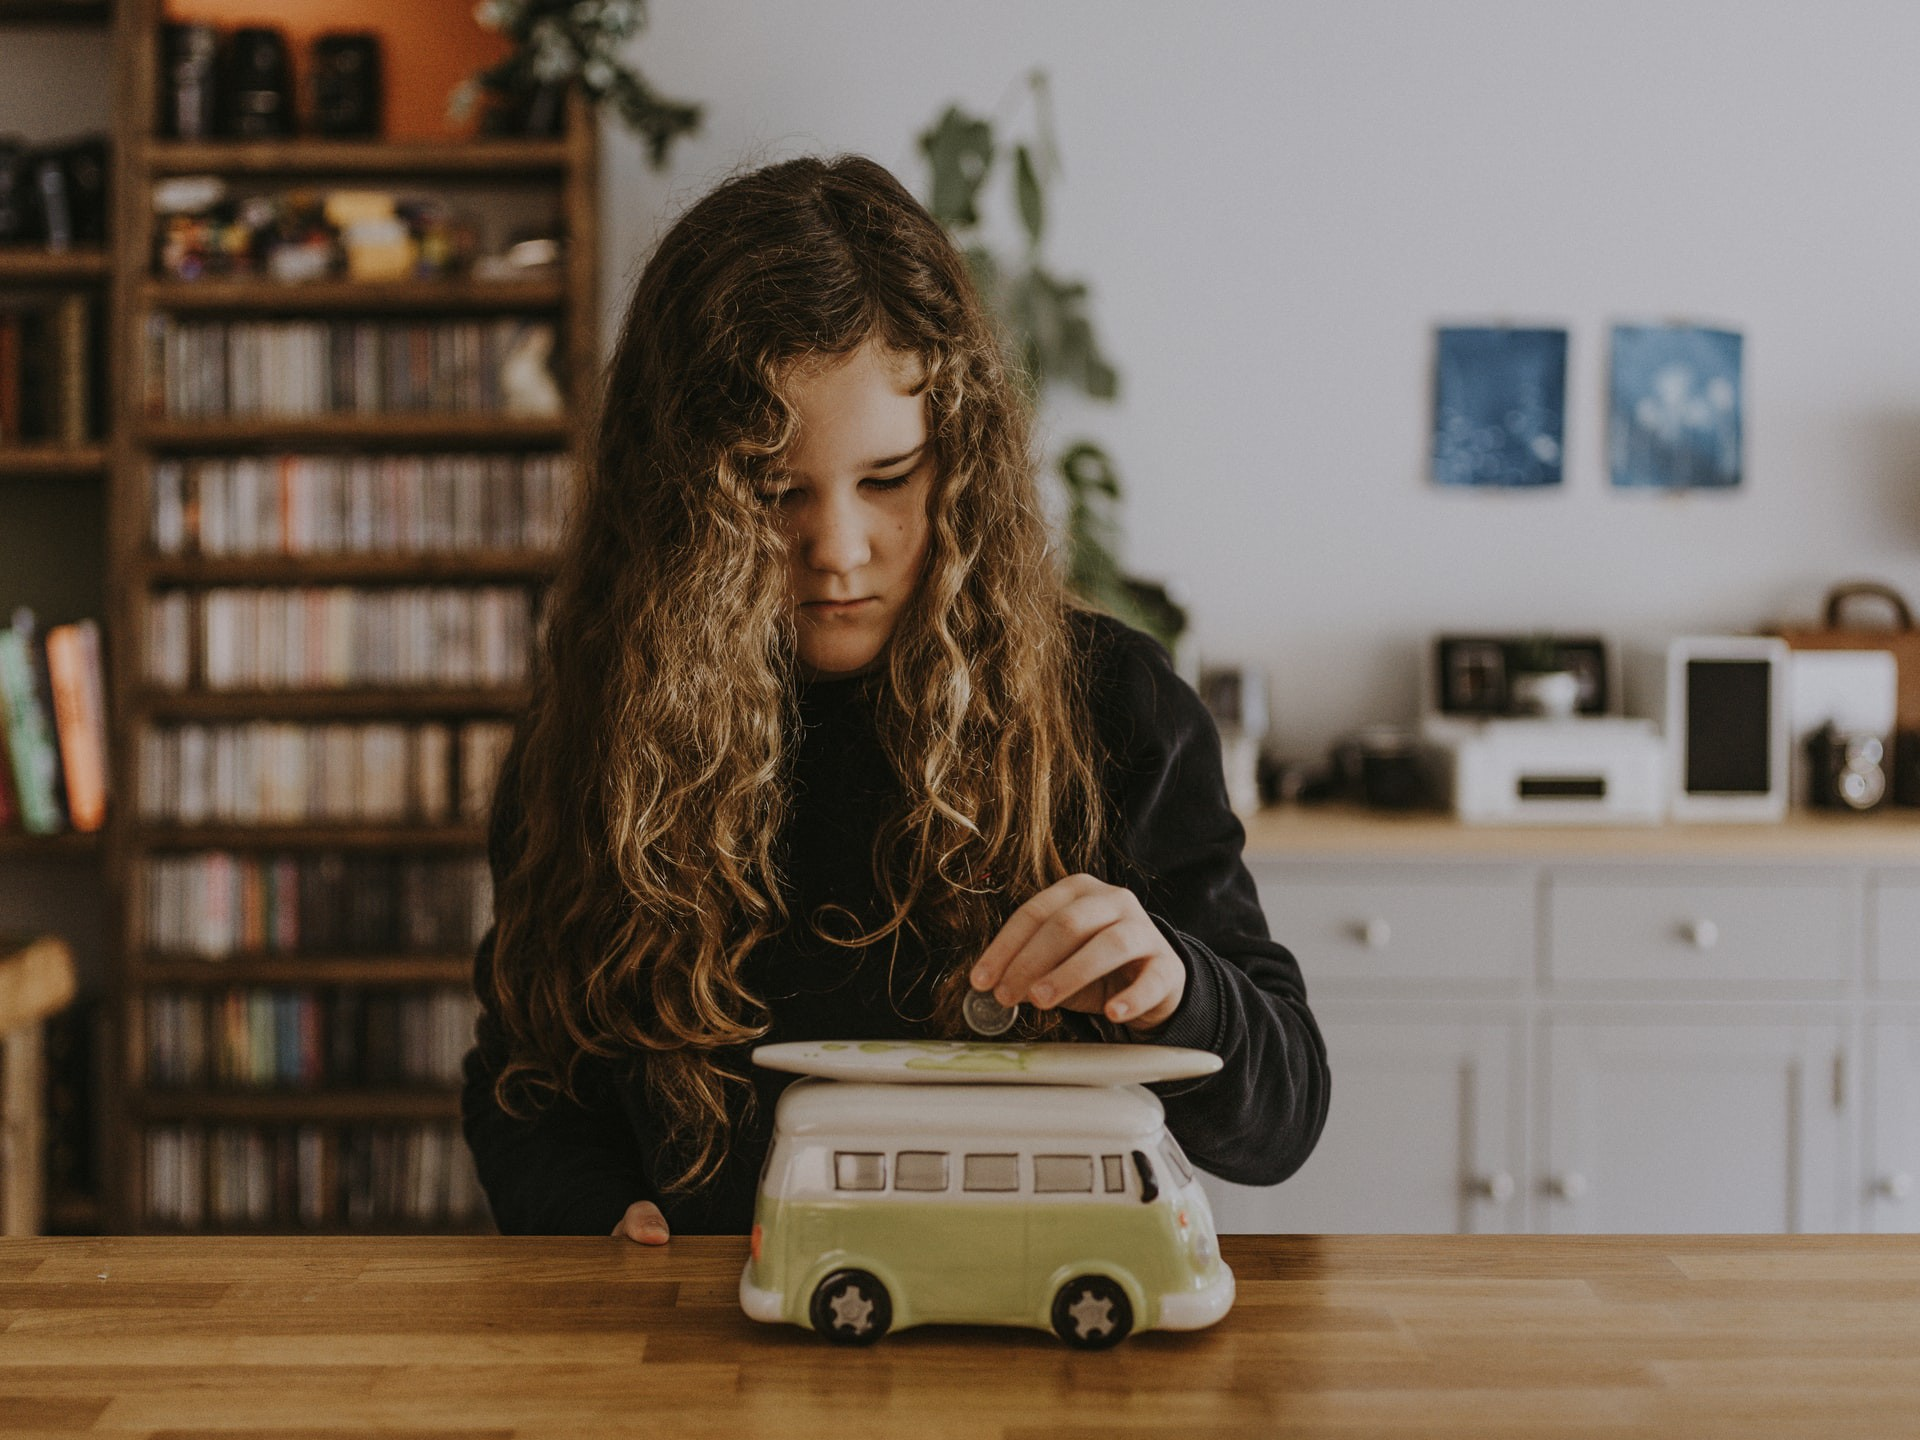 Young lady inserting a coin into a coin container shaped like a bus.